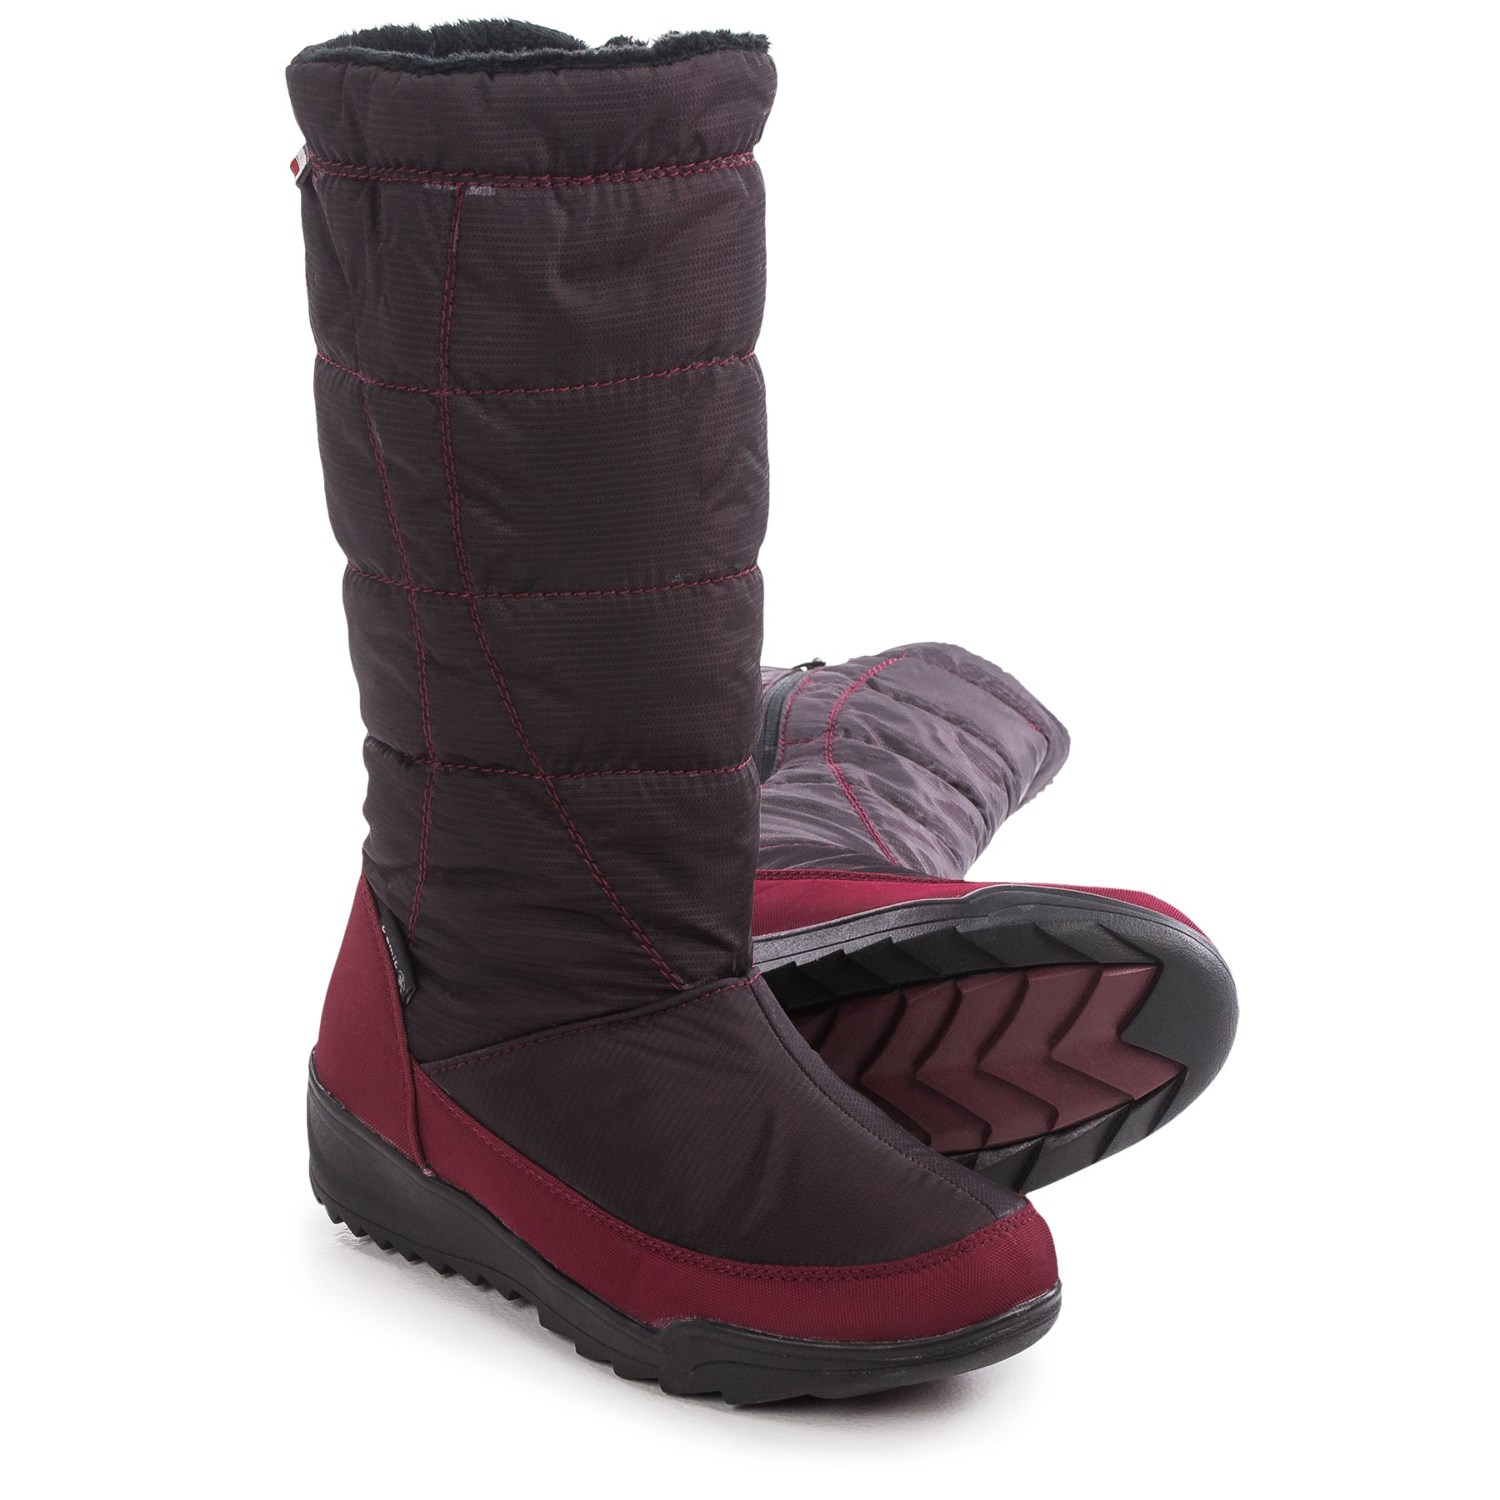 Kamik Nice Snow Boots (For Women) 8634R - Save 89%